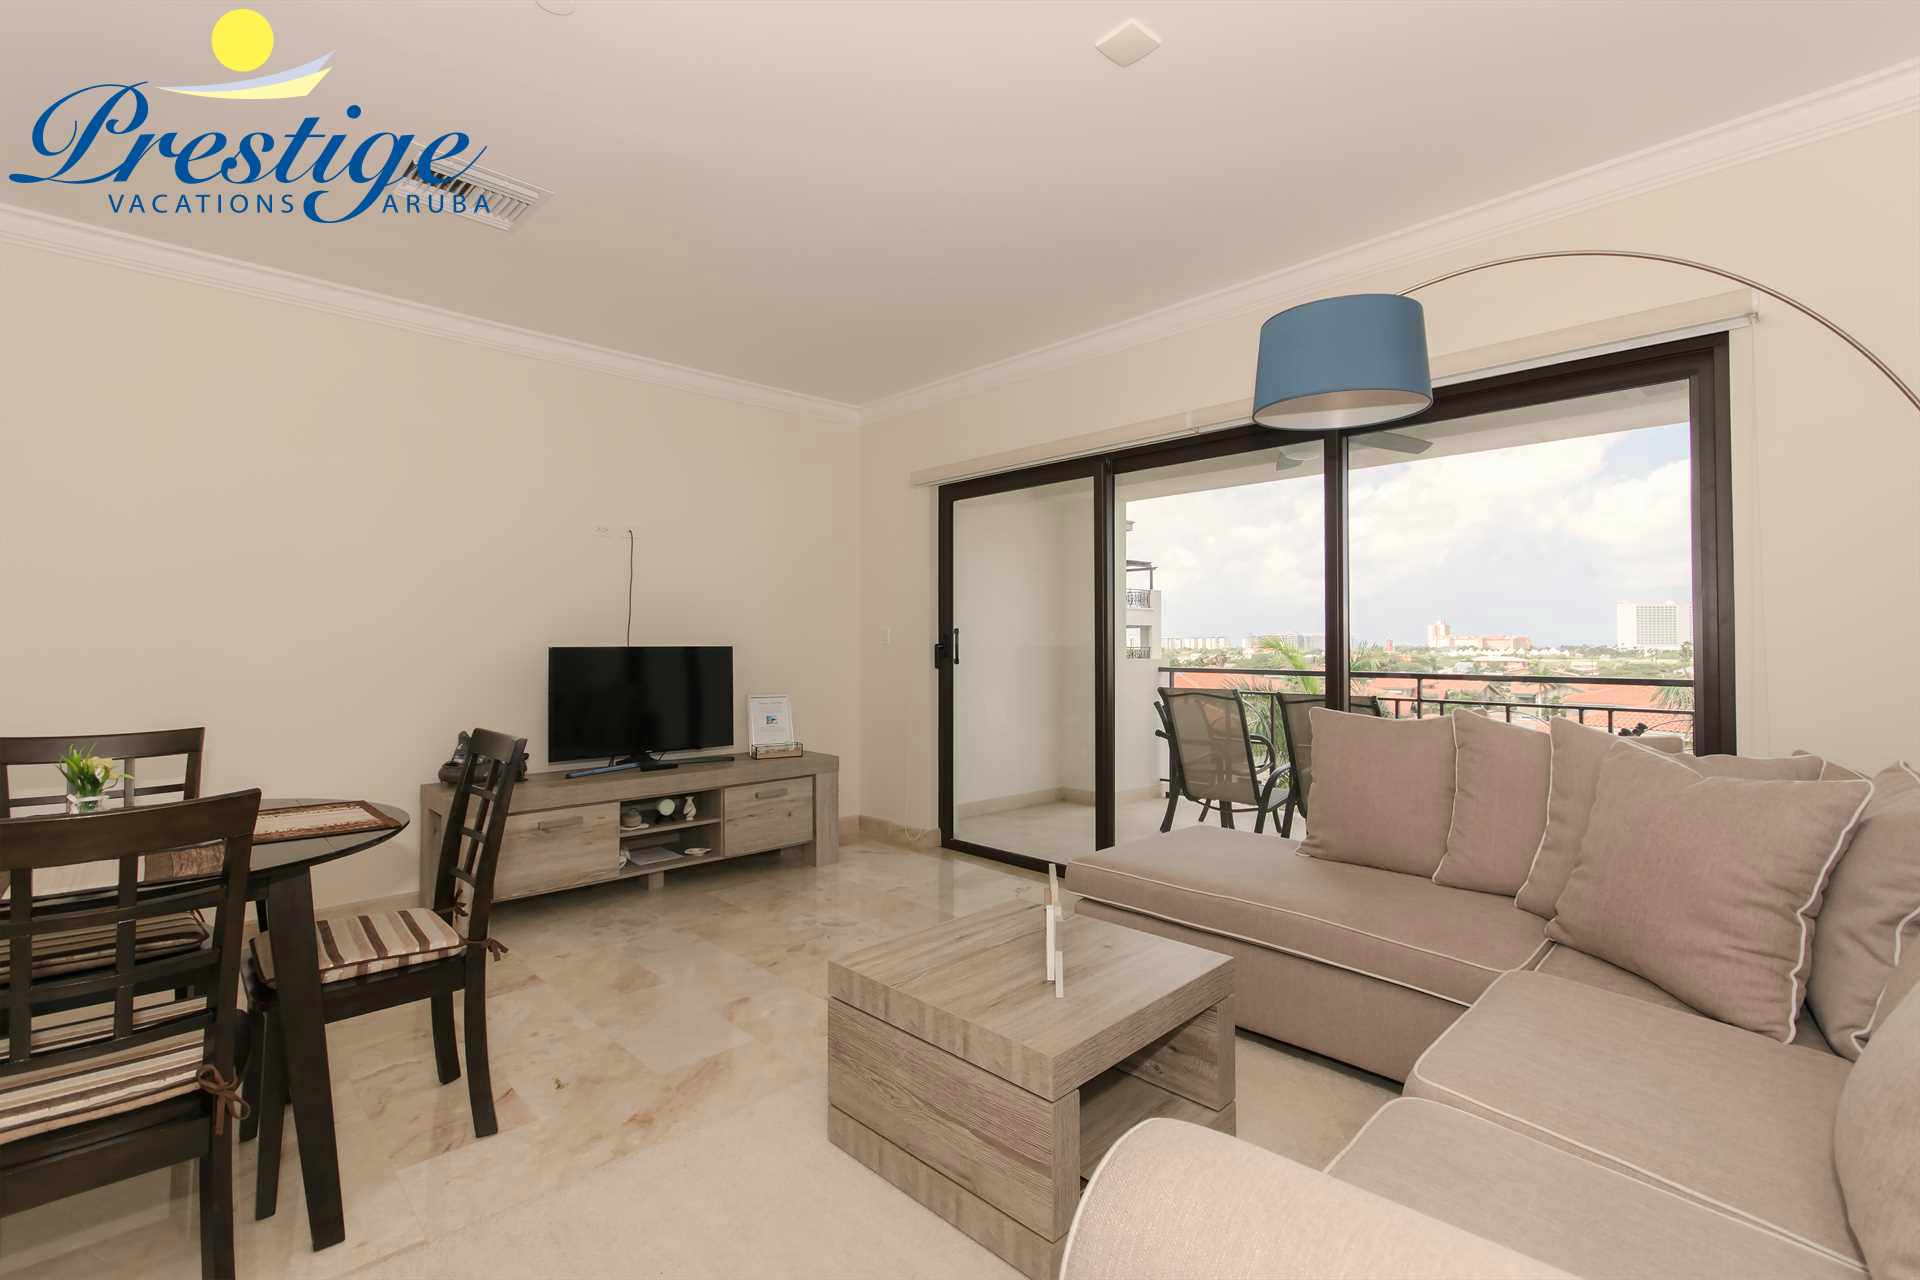 Living room with a TV and access to balcony